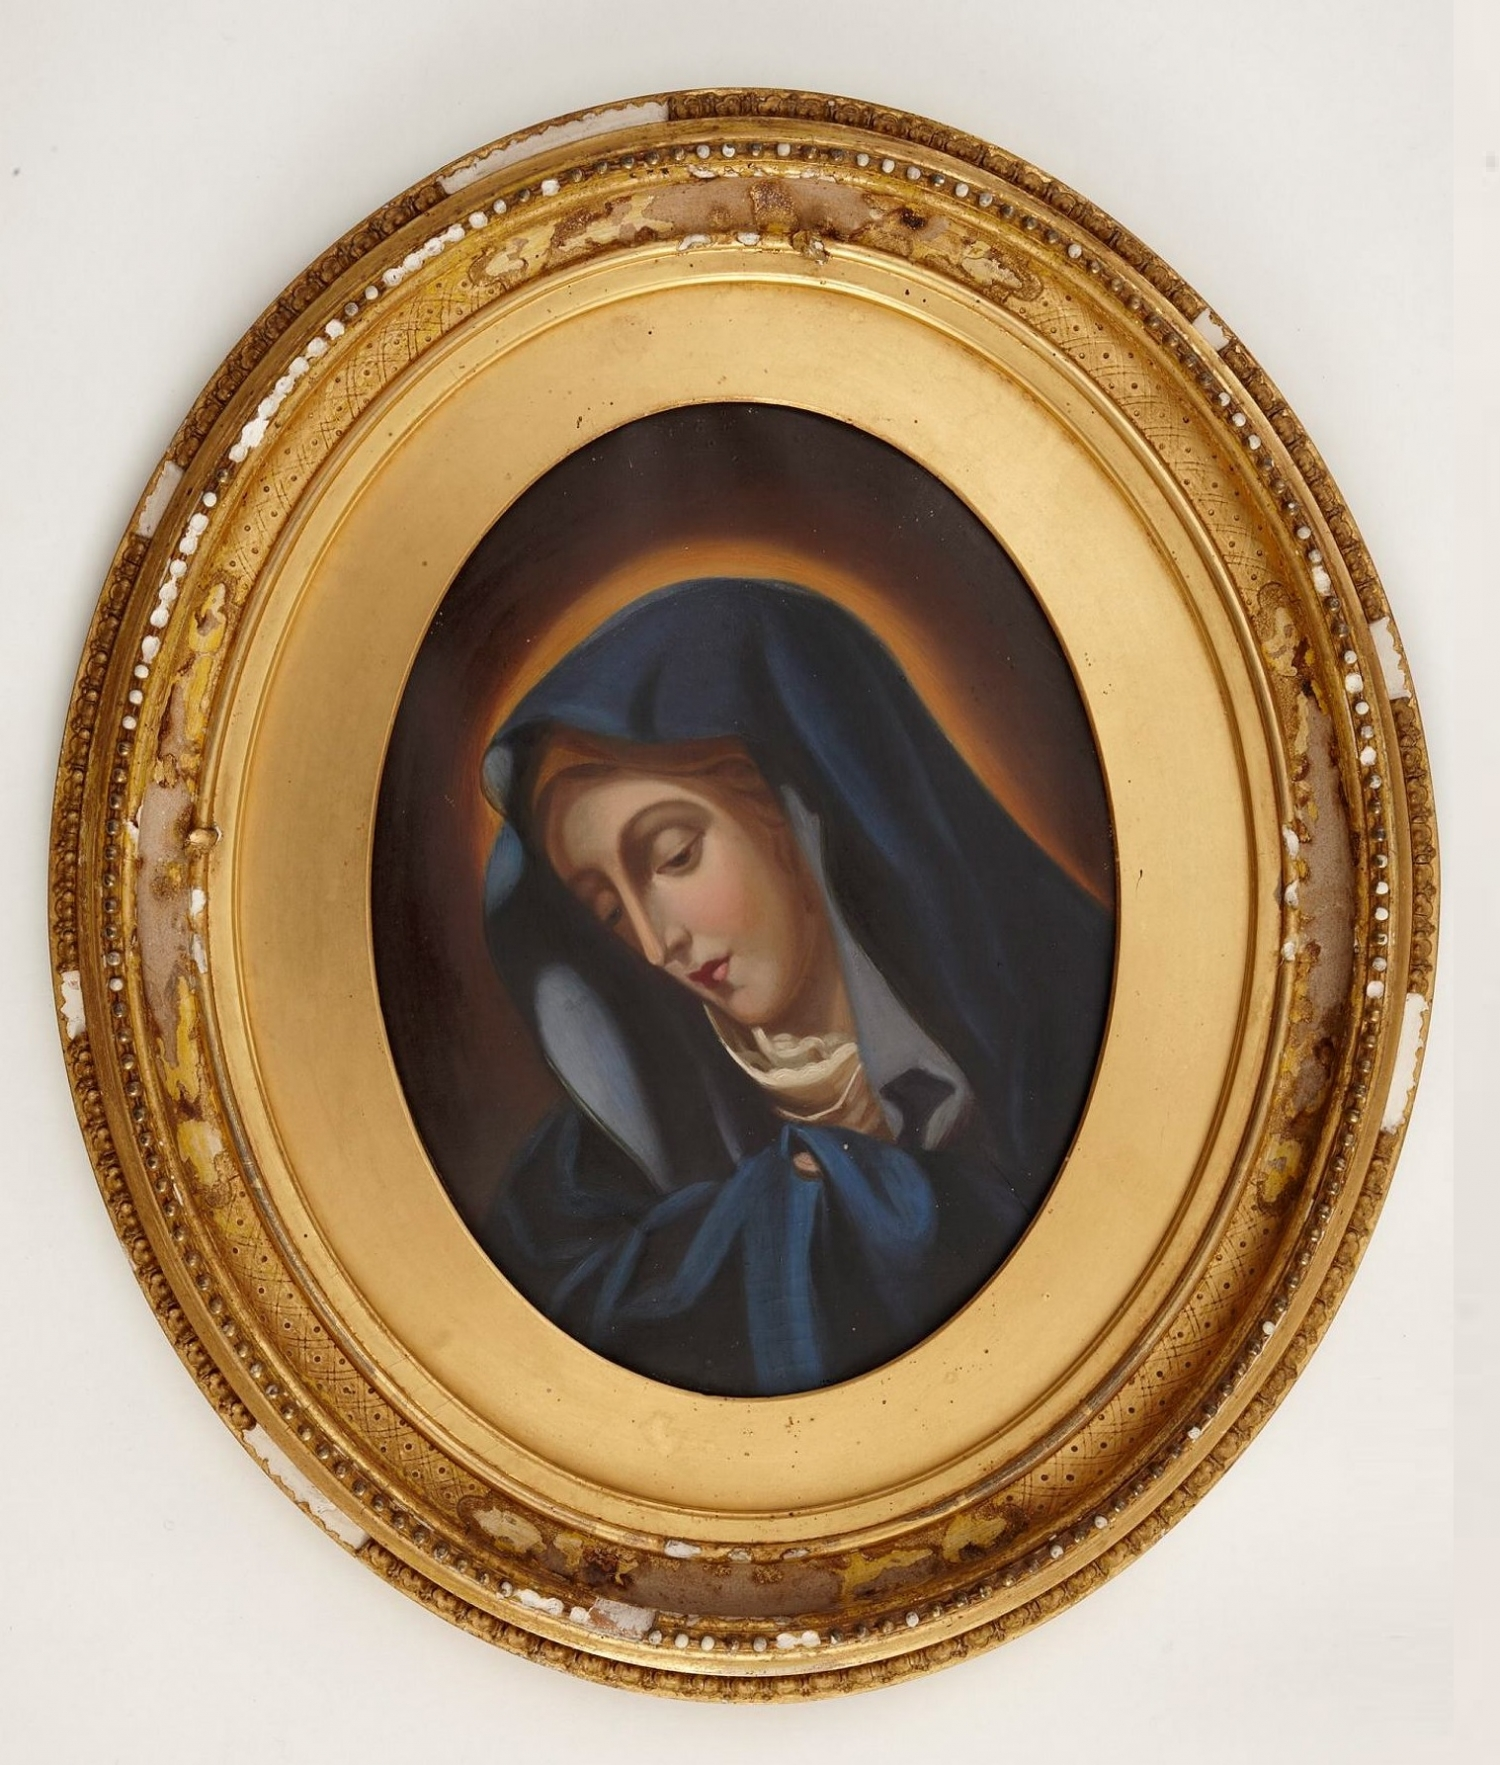 Oval shaped painting in matching oval frame.